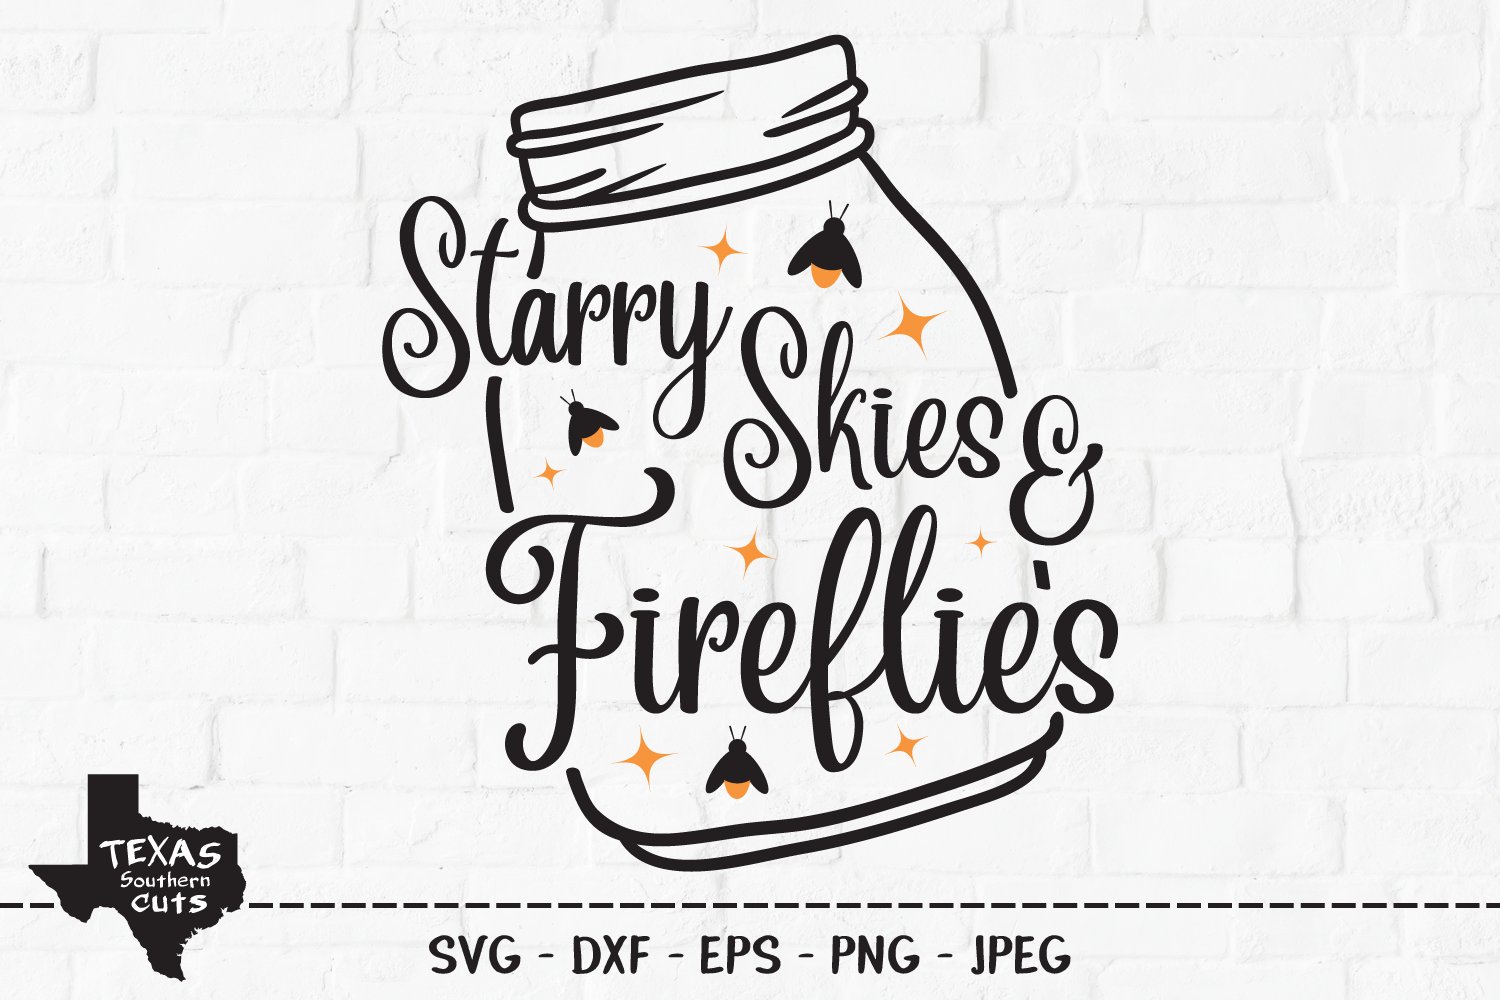 Download Free Starry Skies Fireflies Shirt Design Graphic By SVG Cut Files